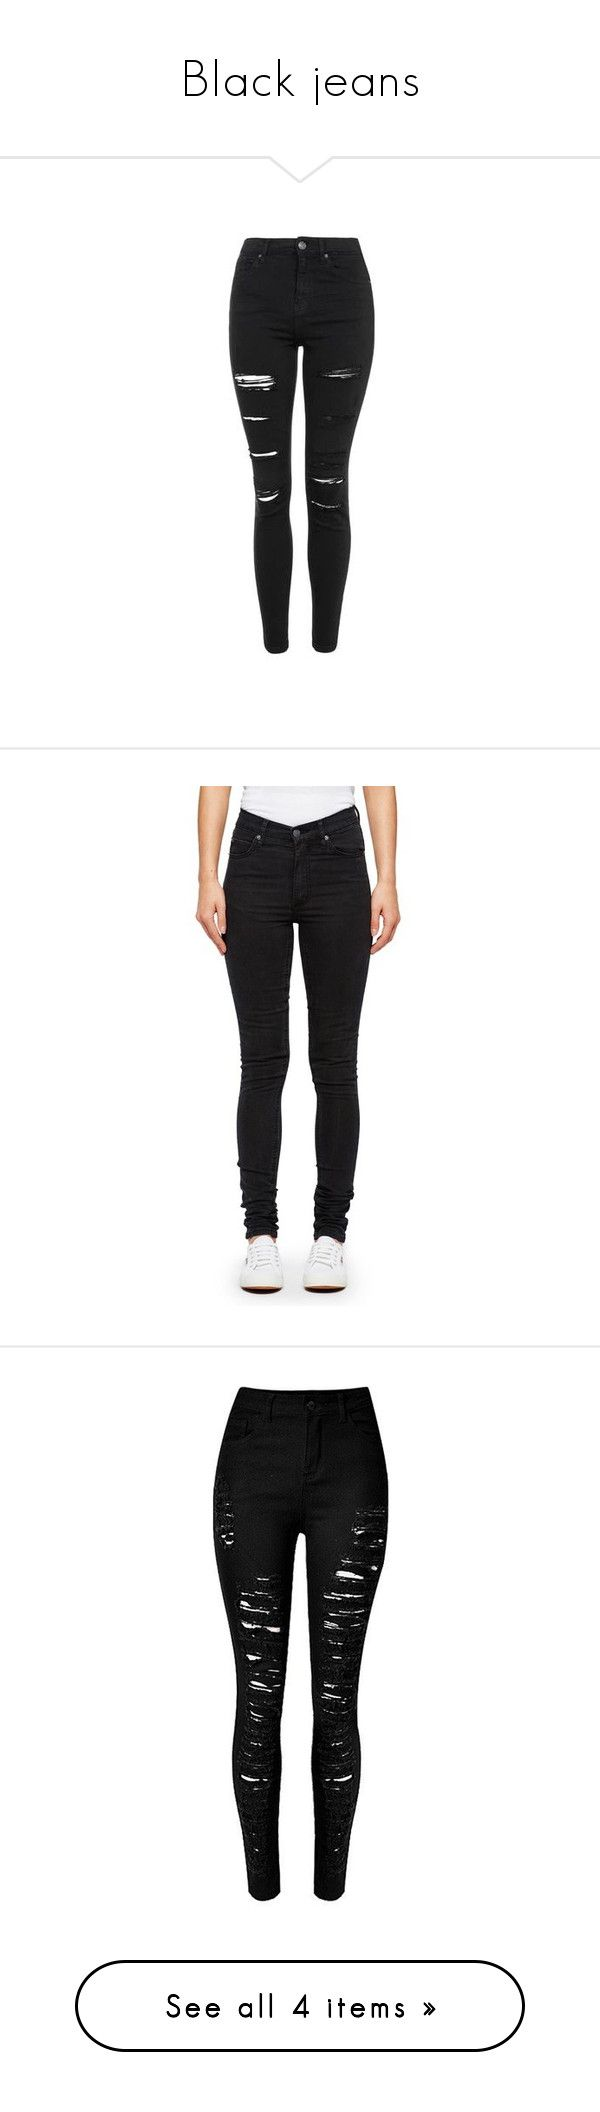 """""""Black jeans"""" by uunicornns ❤ liked on Polyvore featuring jeans, pants, bottoms, calças, skinny jeans, black, high waisted distressed skinny jeans, petite skinny jeans, high waisted ripped skinny jeans and ripped jeans"""